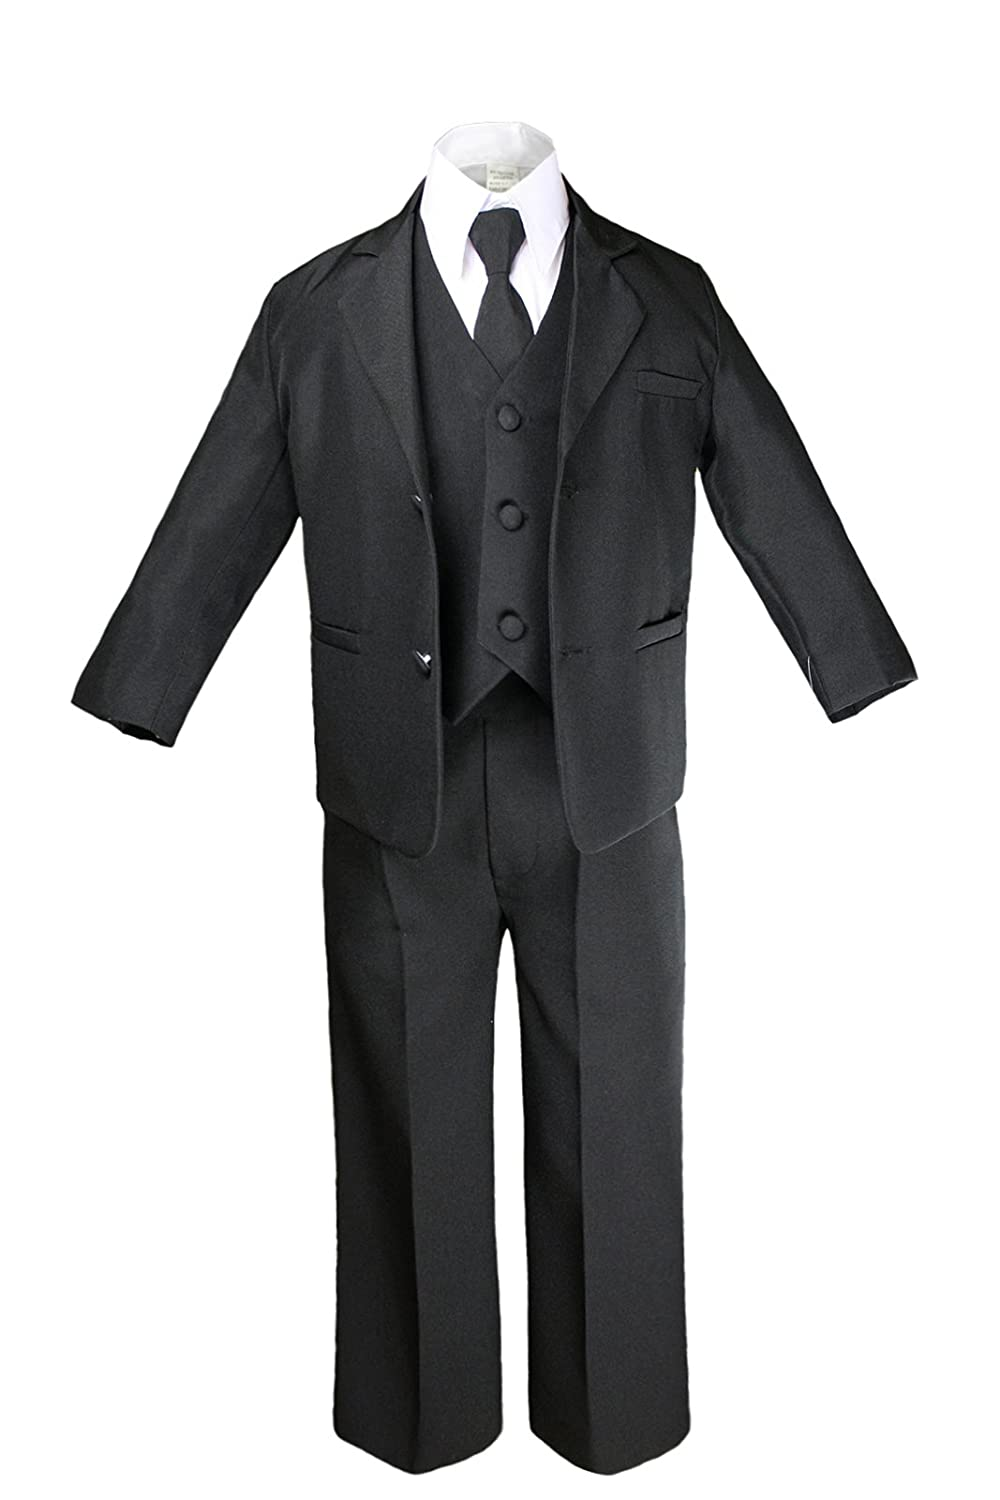 New 7pc Boys Black Suit with Satin Yellow Vest Set from Baby to Teen 2T